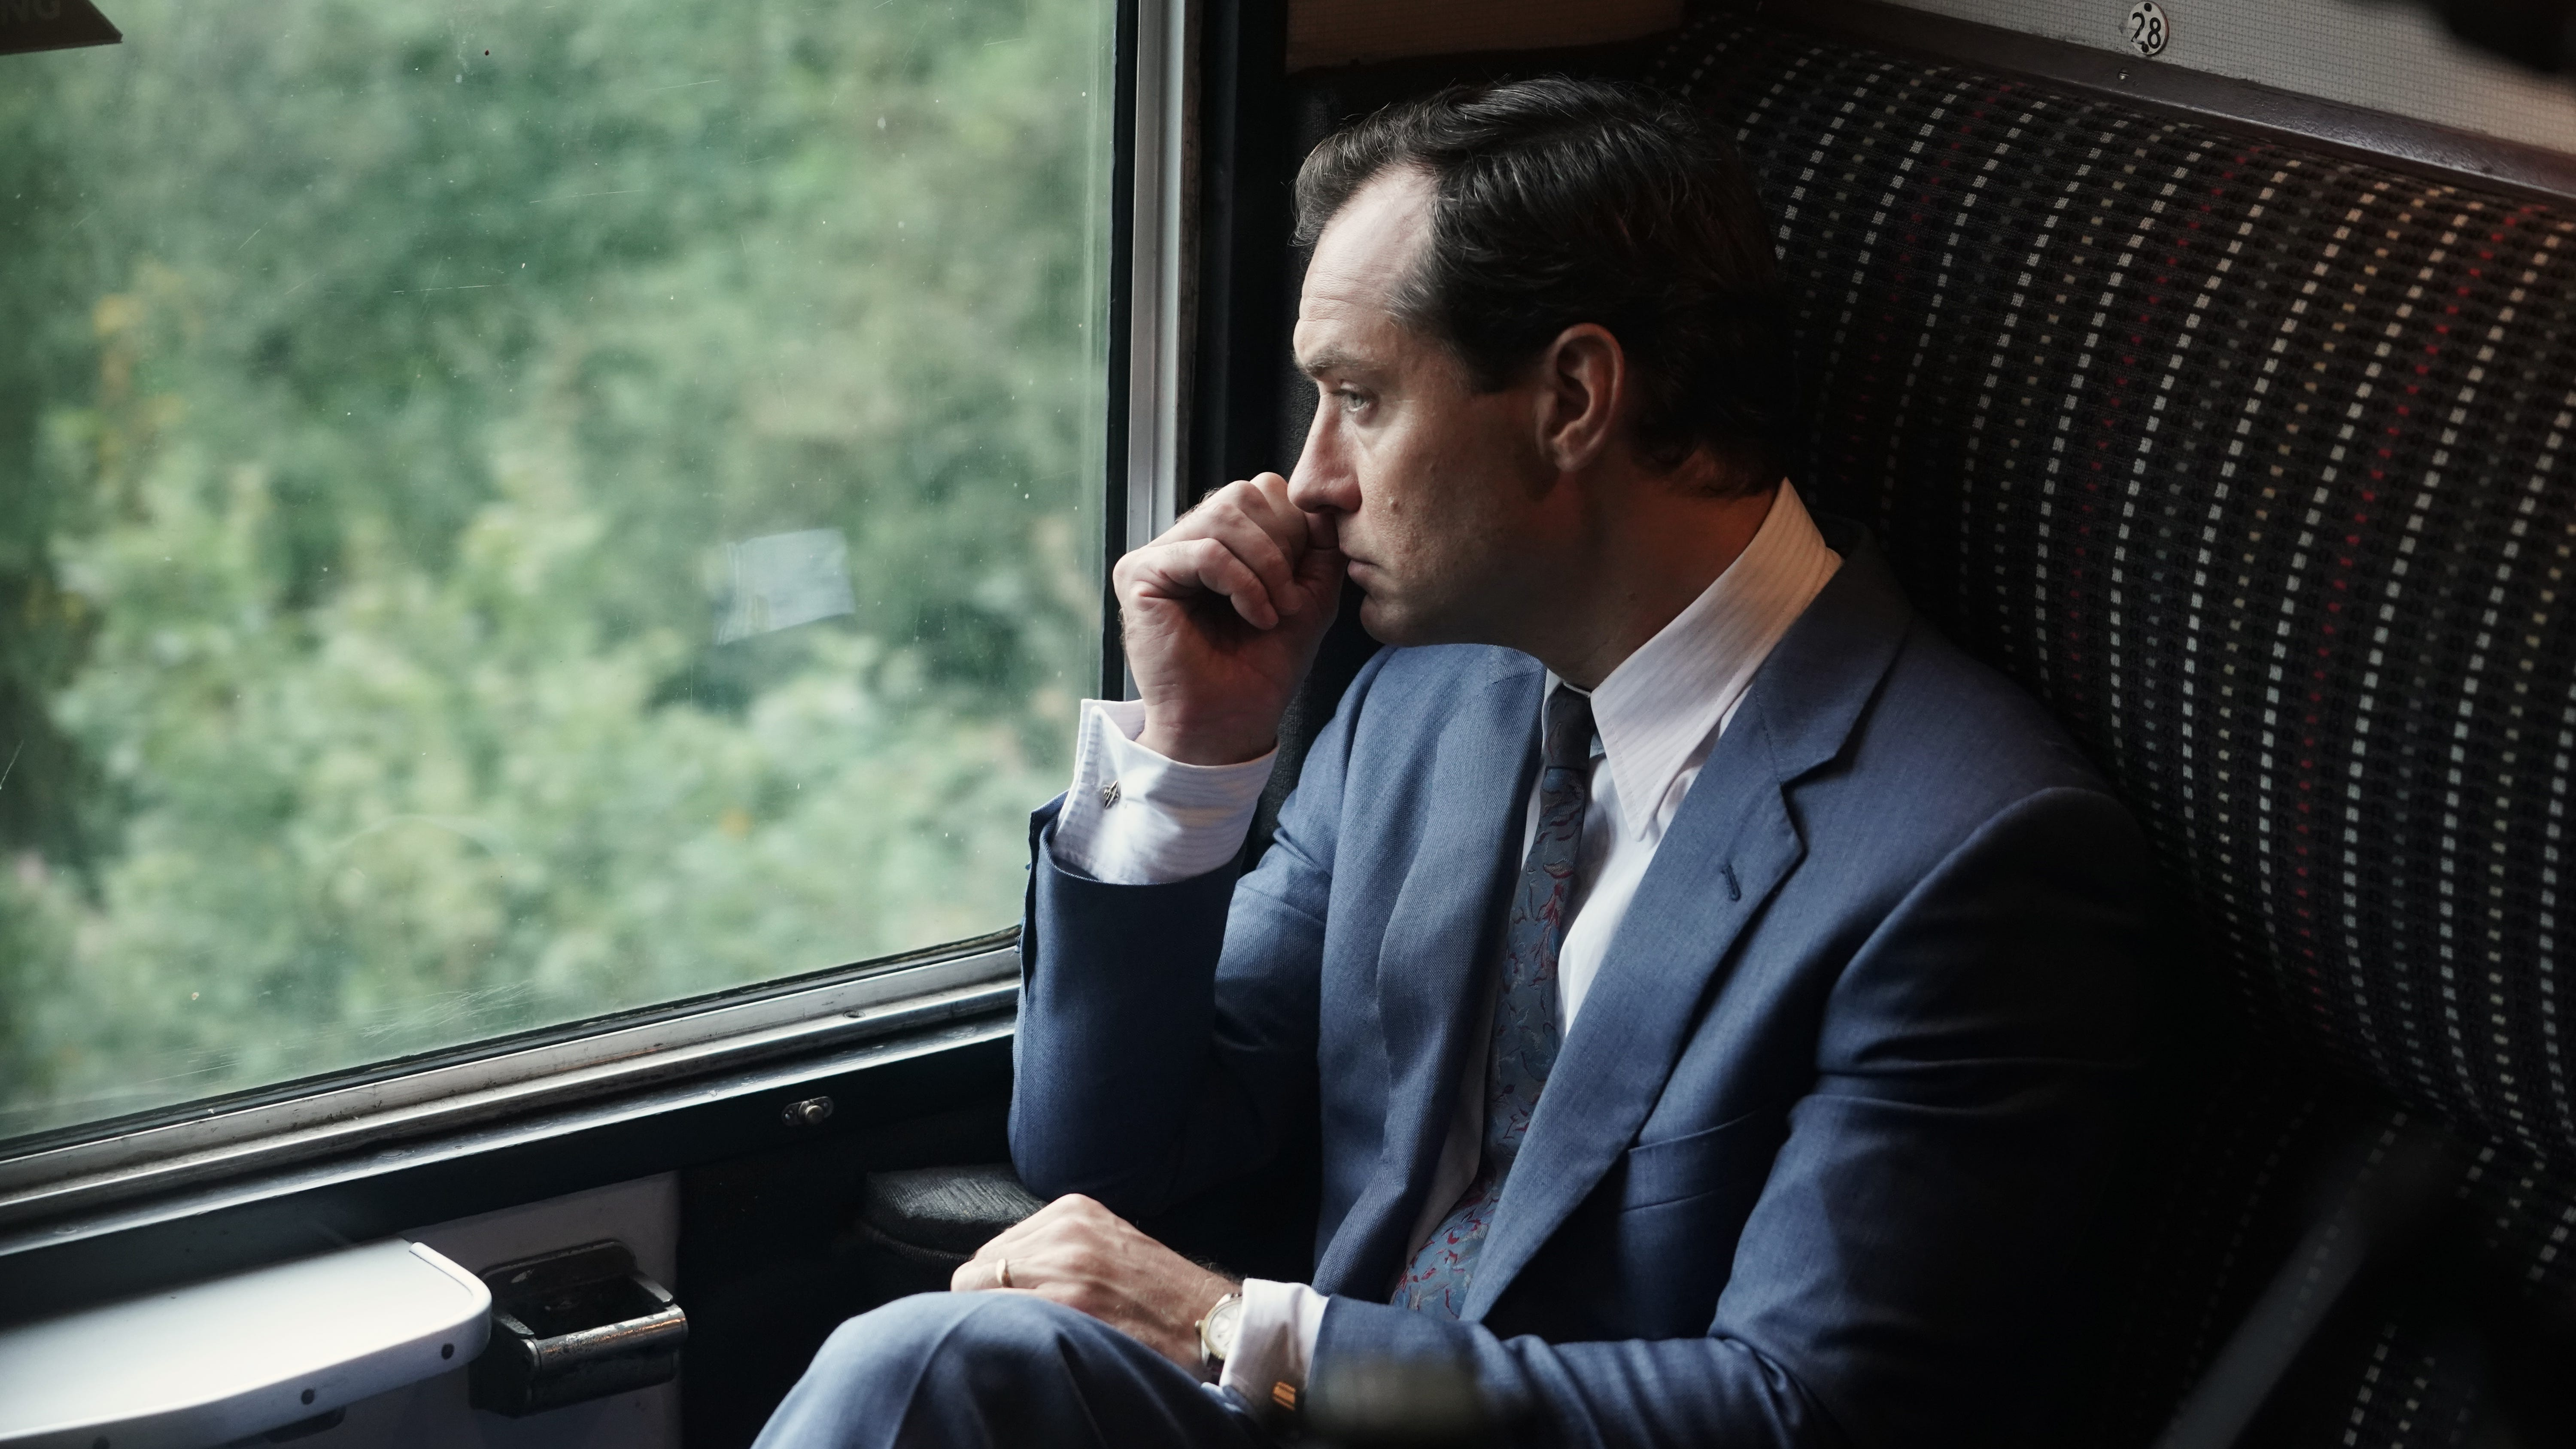 Movie review: Jude Law plays a man adrift in ambition in 'The Nest'